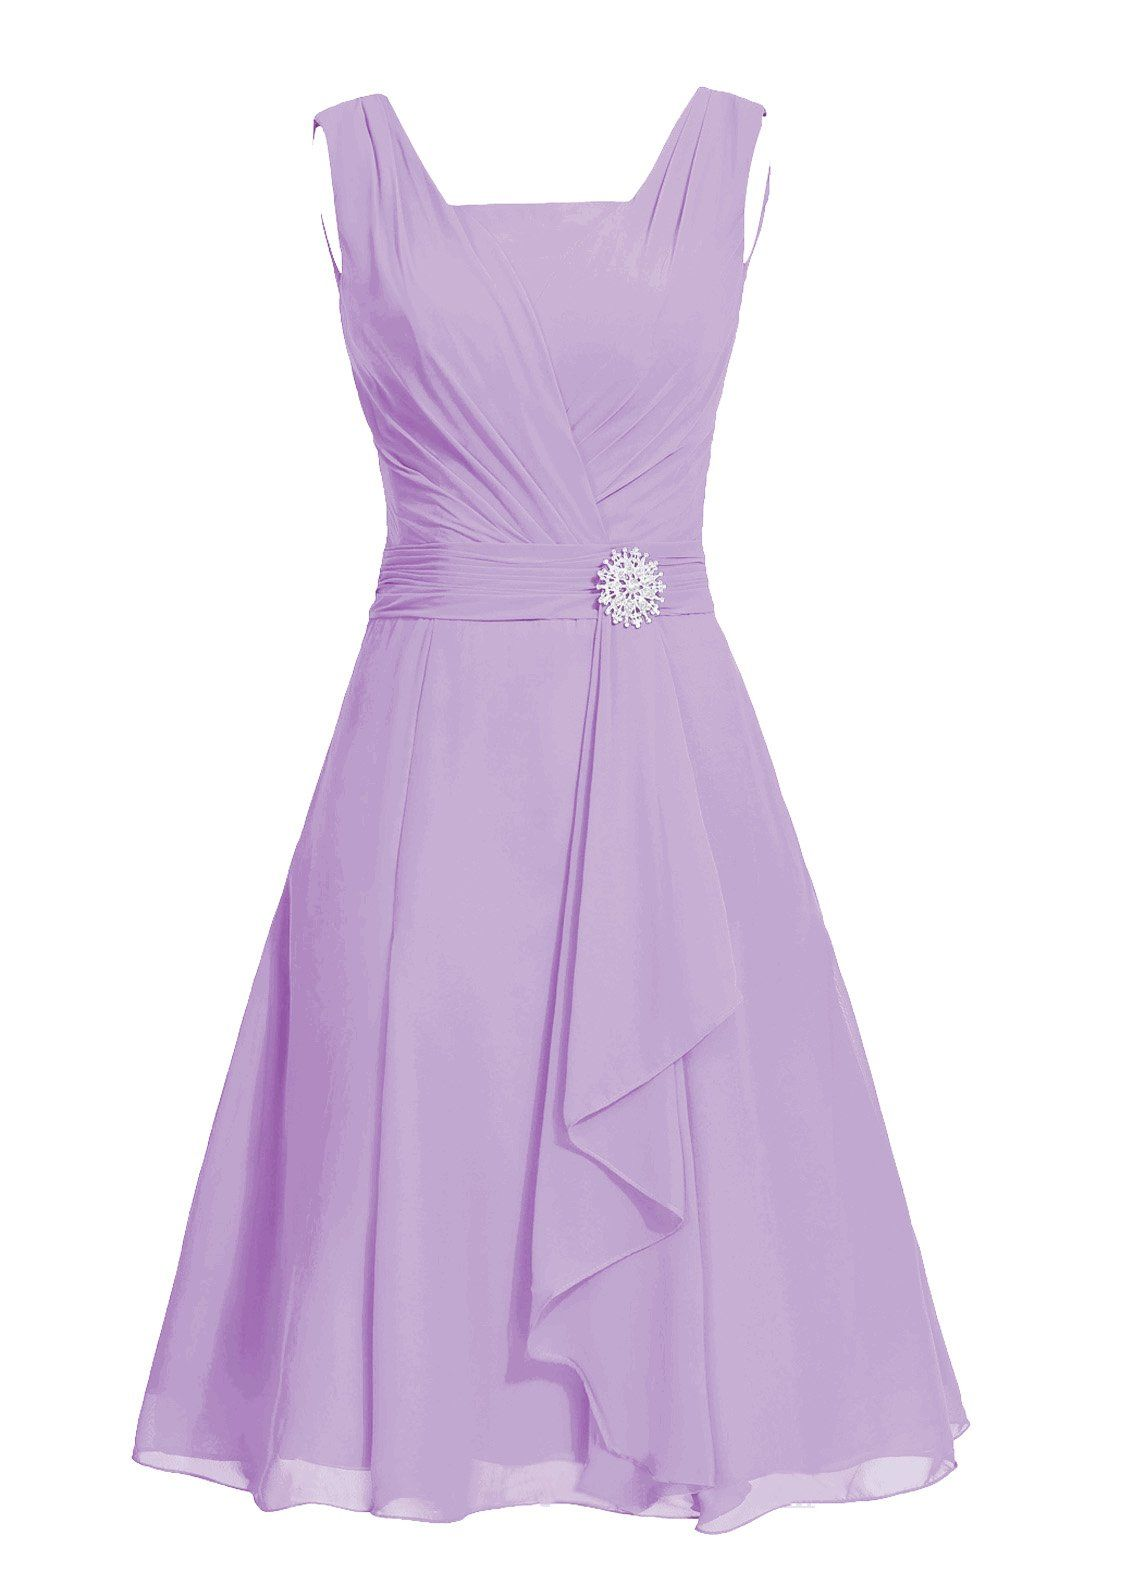 Dresstells® Women's Short Square Chiffon Bridesmaid Dress Party Dress with Sash Lavender Size14 at Amazon Women's Clothing store: